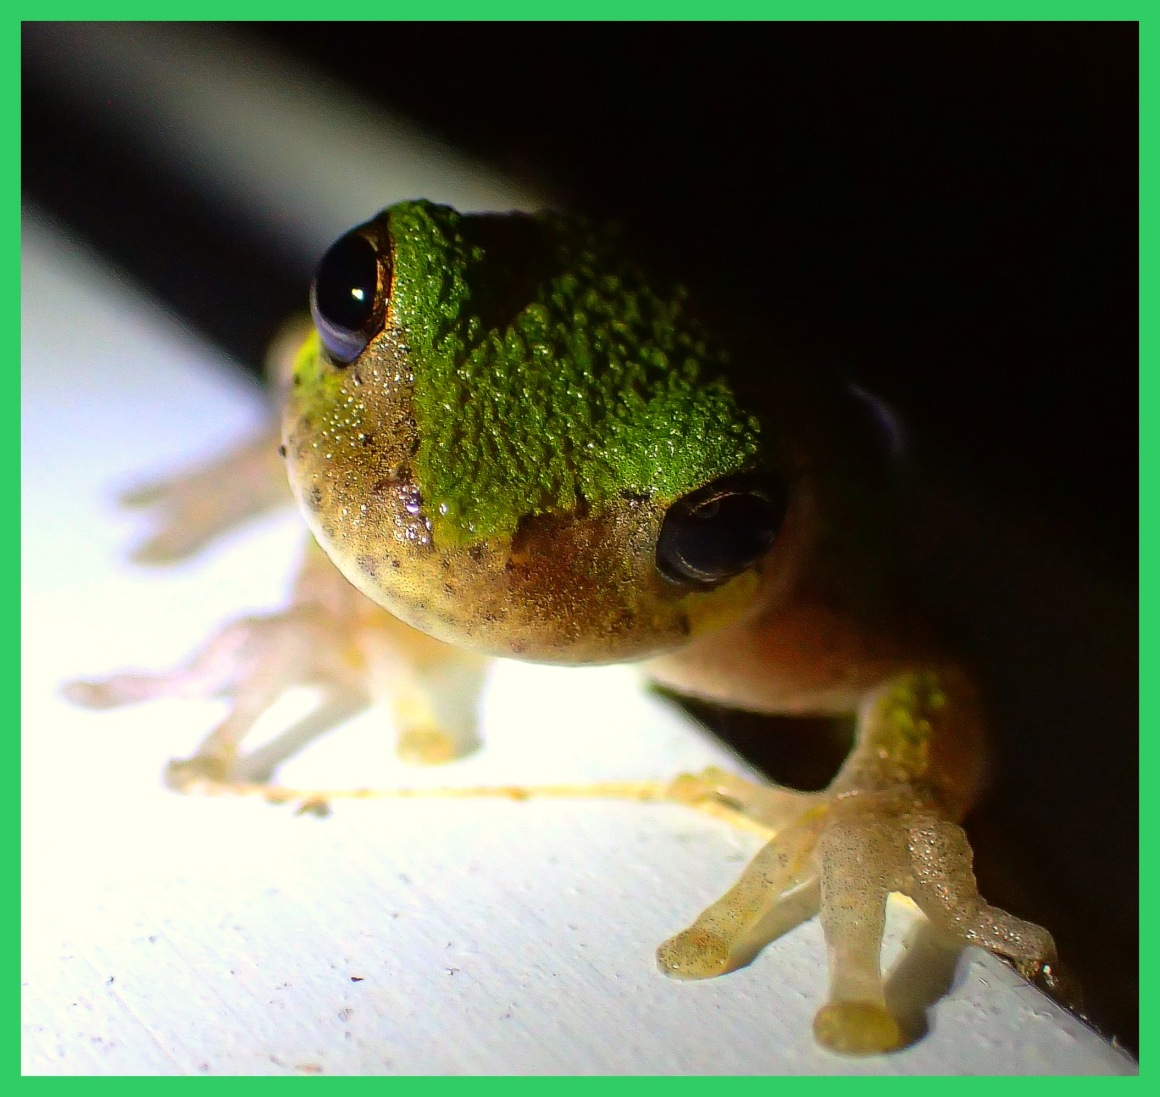 Tree Frog climbing around the porch (1). Photo by Thomas Peace c. 2015